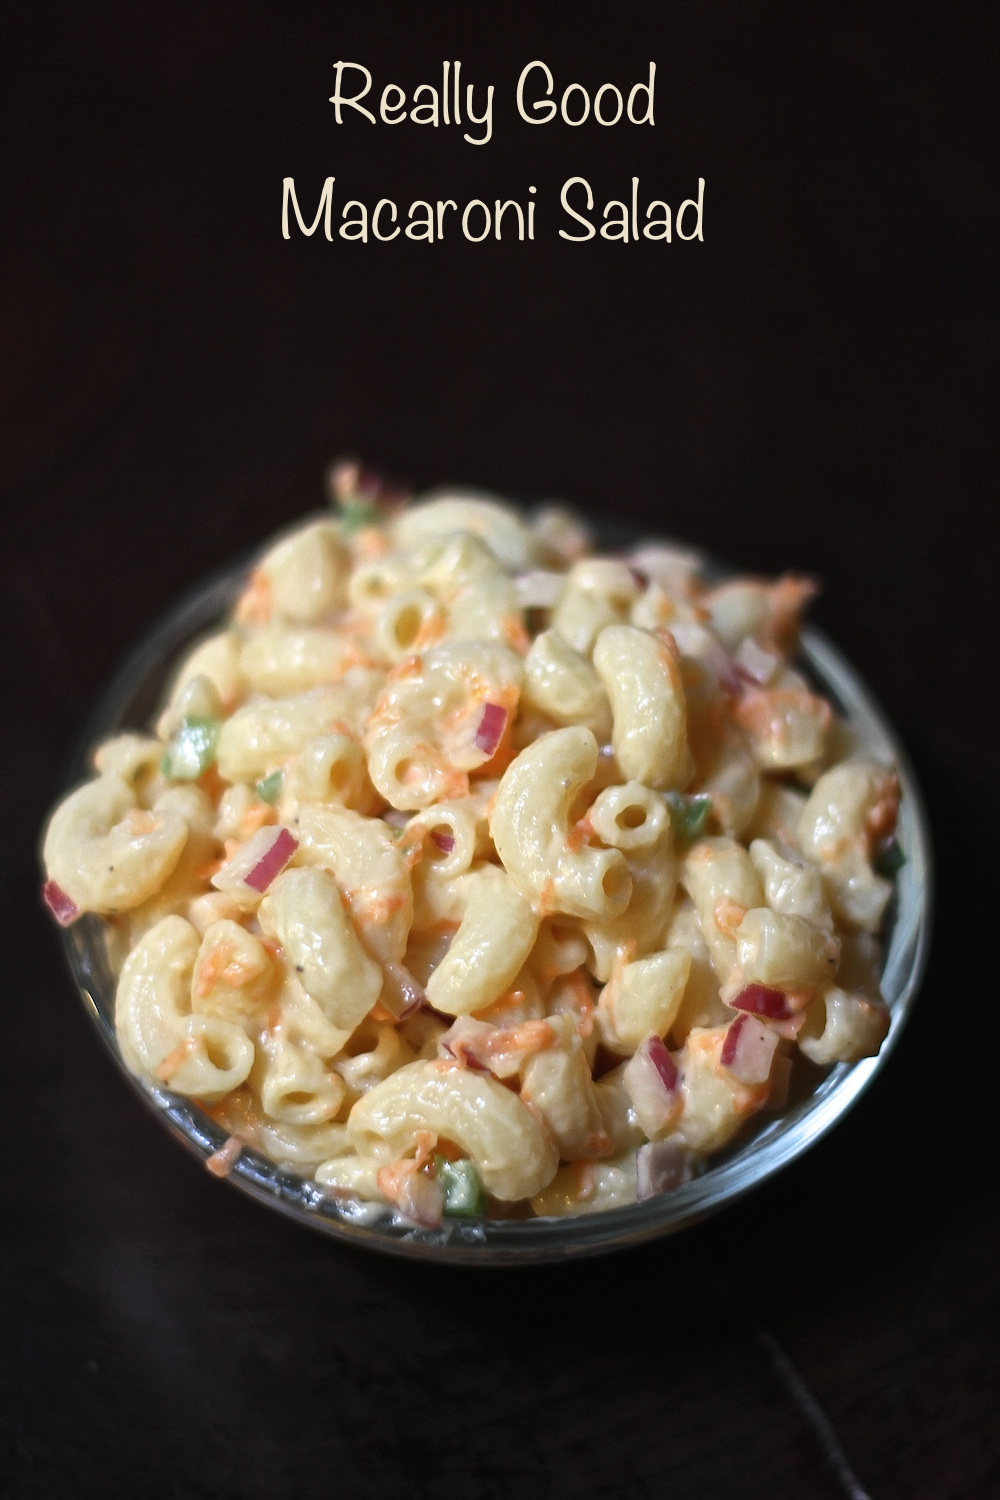 Really Good Macaroni Salad